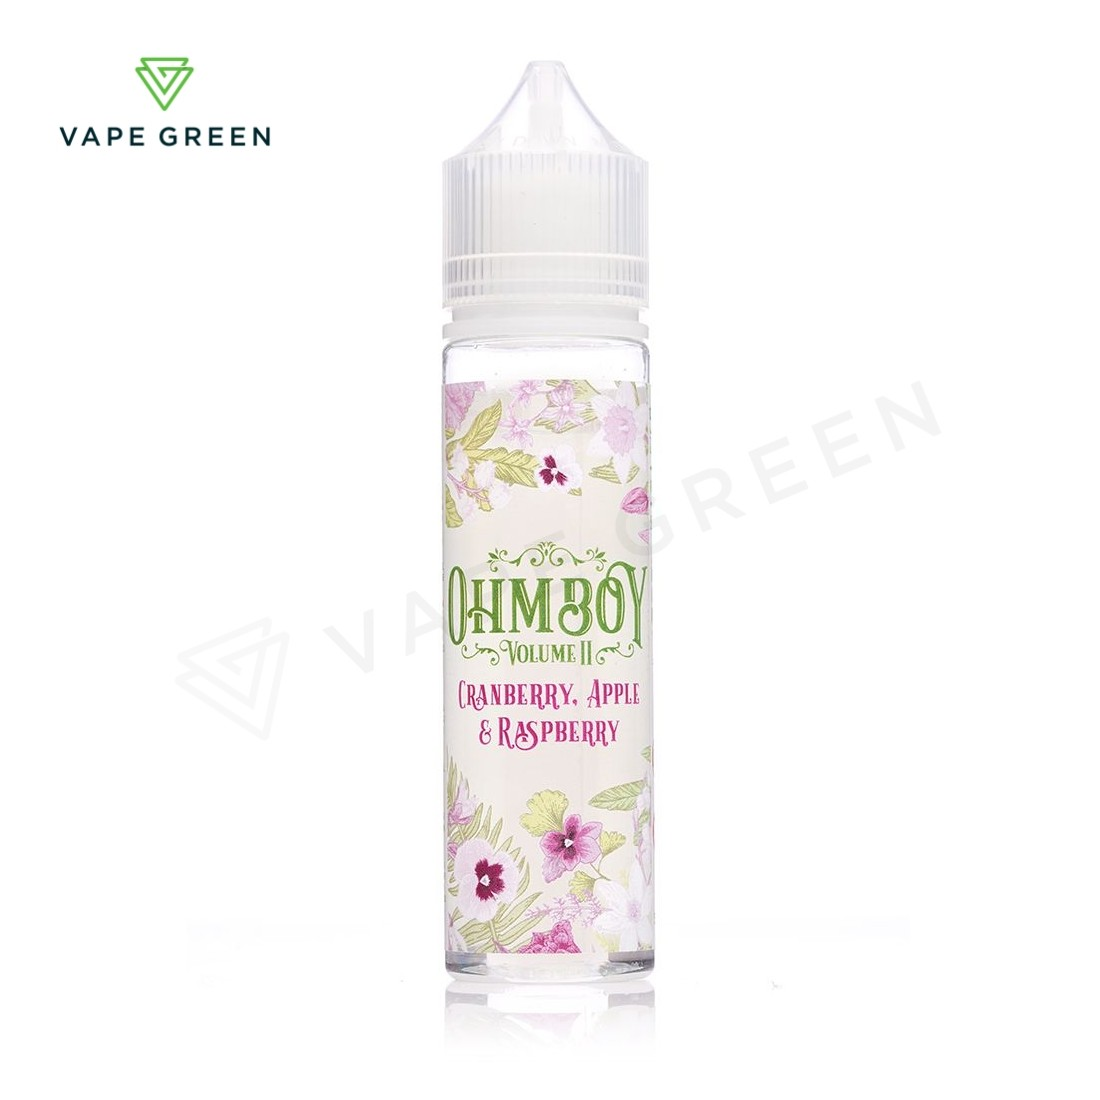 Cranberry, Apple & Raspberry E-liquid by Ohm Boy Volume II 50ml